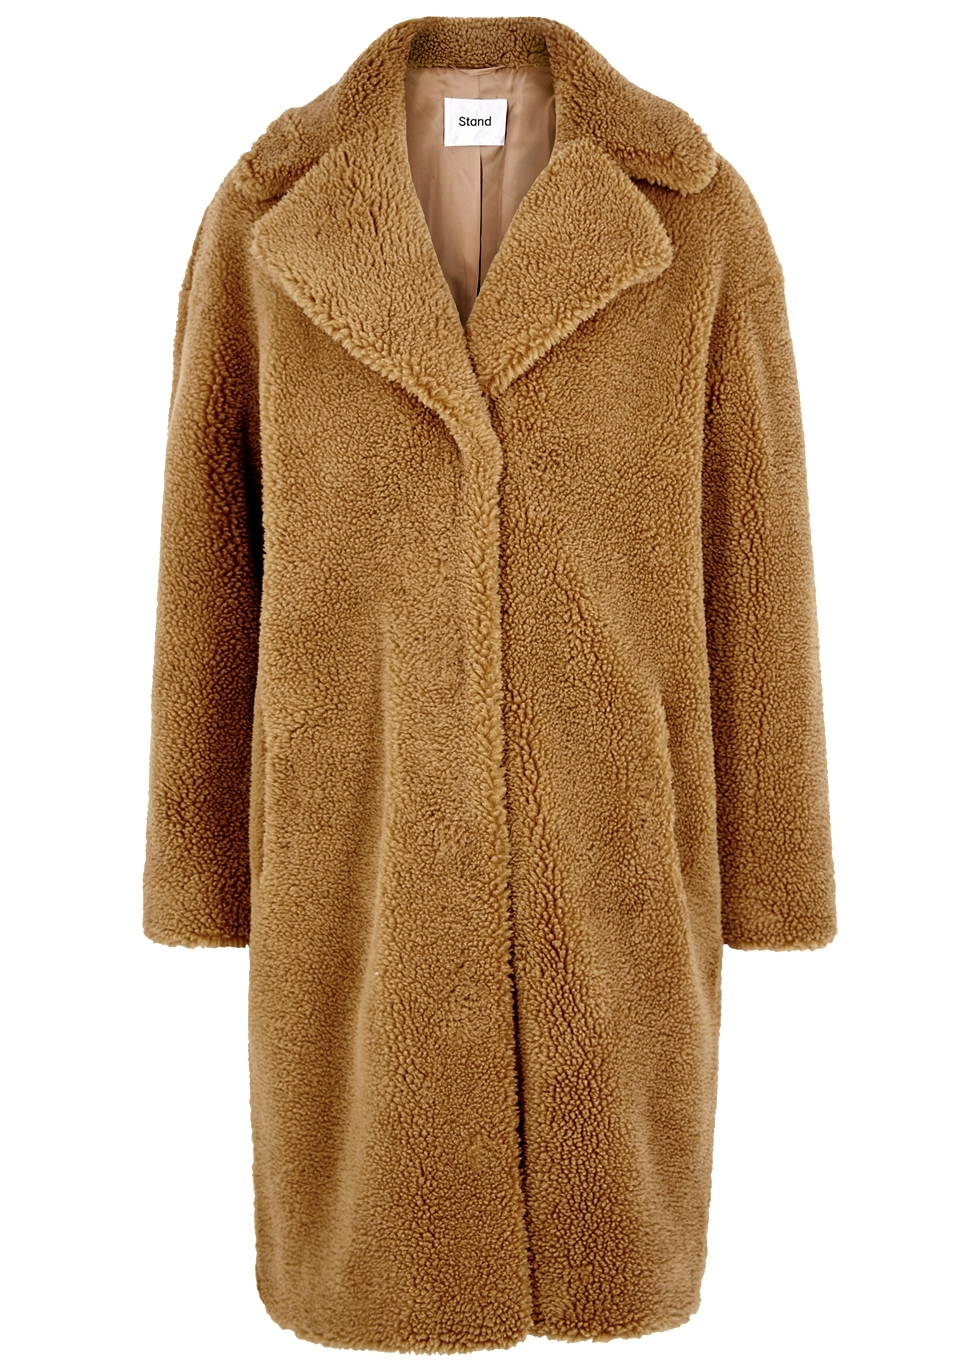 Camille brown faux shearling coat - Stand